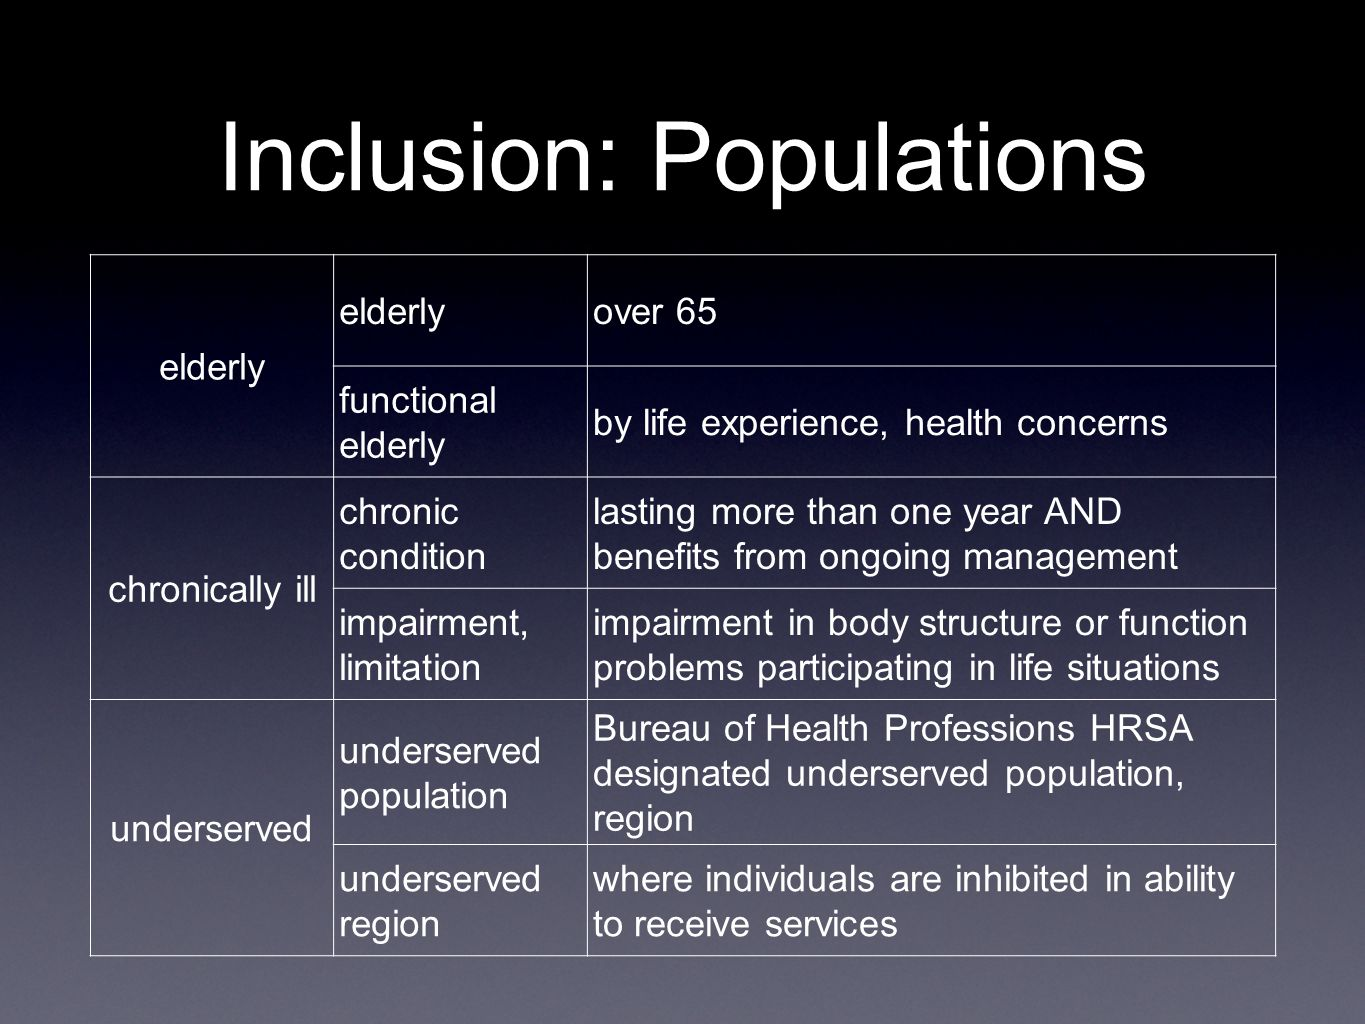 Inclusion: Populations elderly over 65 functional elderly by life experience, health concerns chronically ill chronic condition lasting more than one year AND benefits from ongoing management impairment, limitation impairment in body structure or function problems participating in life situations underserved underserved population Bureau of Health Professions HRSA designated underserved population, region underserved region where individuals are inhibited in ability to receive services